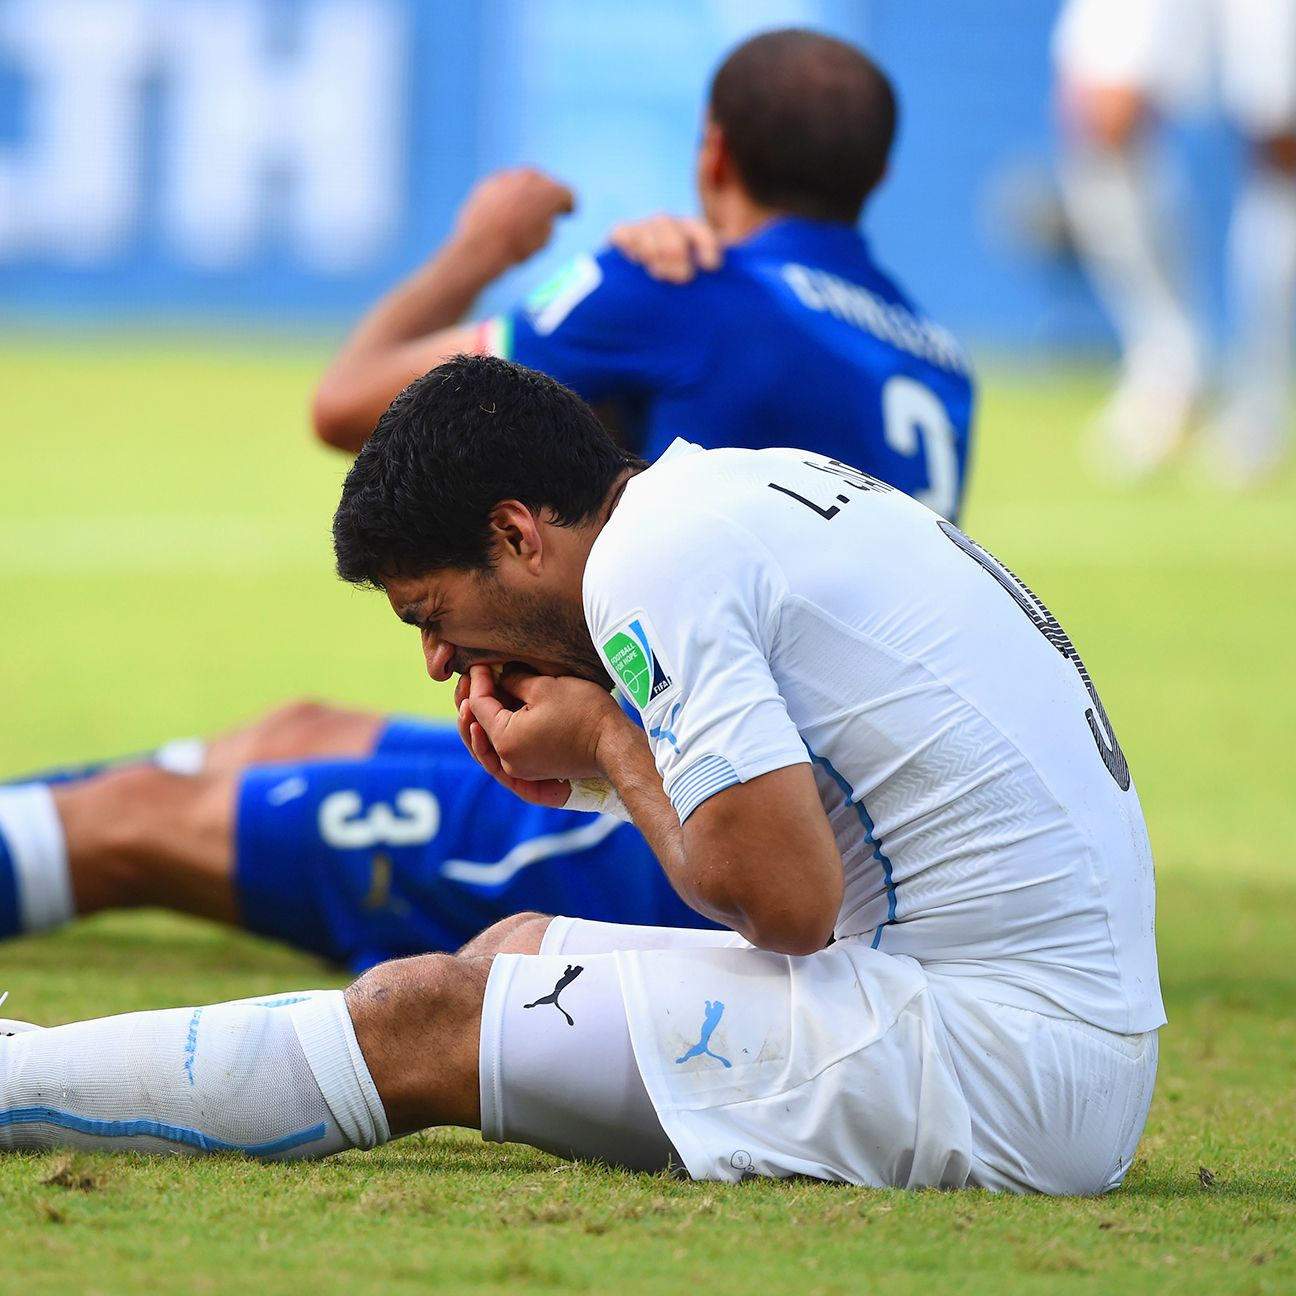 Luis Suarez biting controversy takes center stage at World Cup